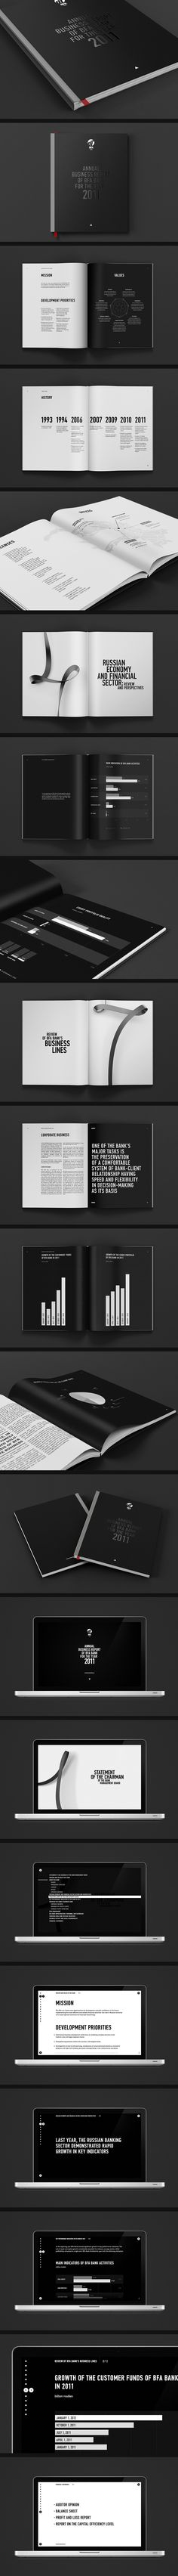 Annual Report I editorial design & layout